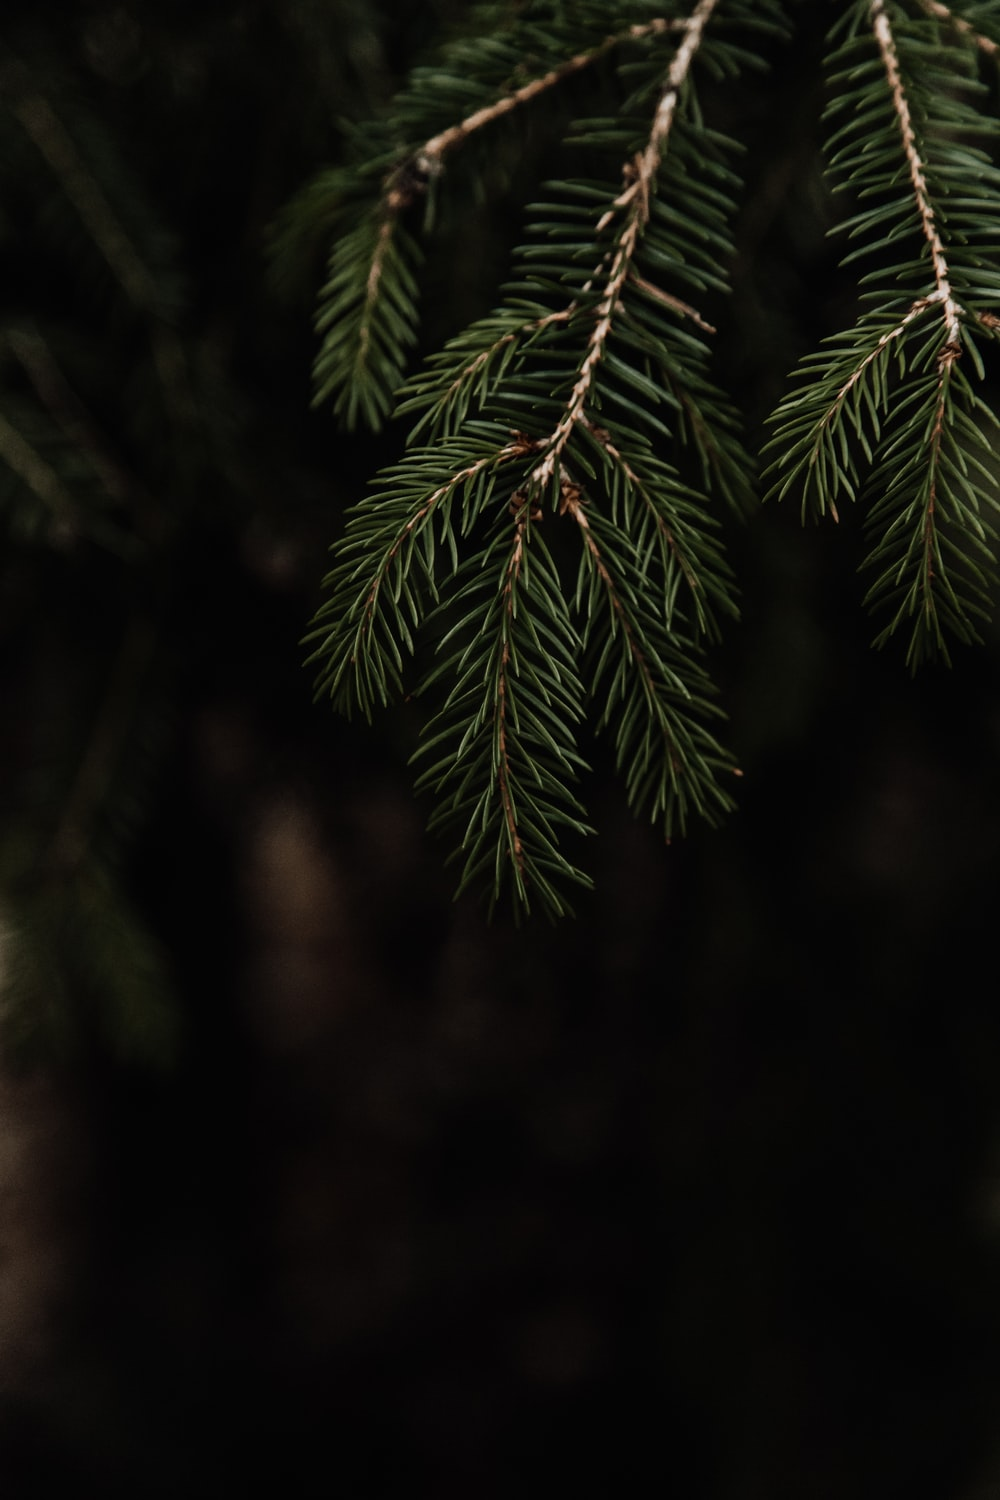 green pine leaves in closeup photography